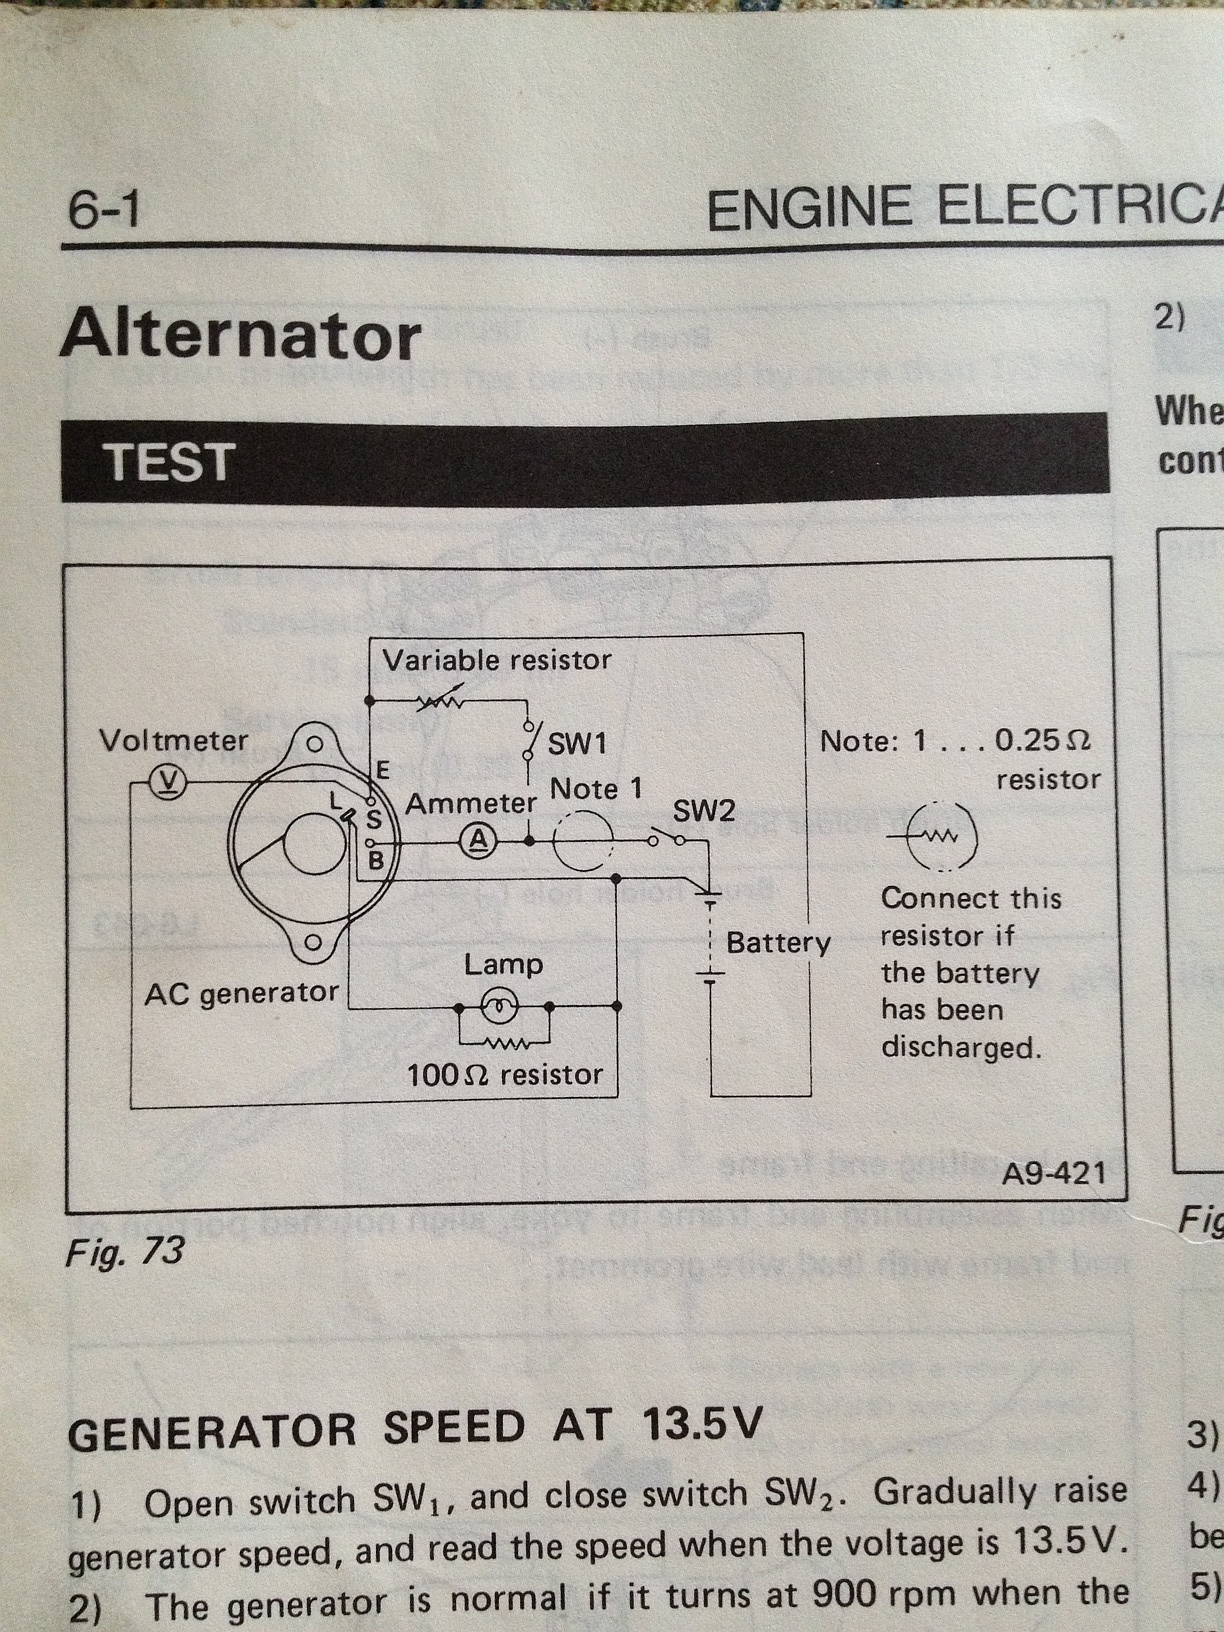 Subaru Legacy Wiring Diagram On For A 1990 Subaru Legacy Wiring